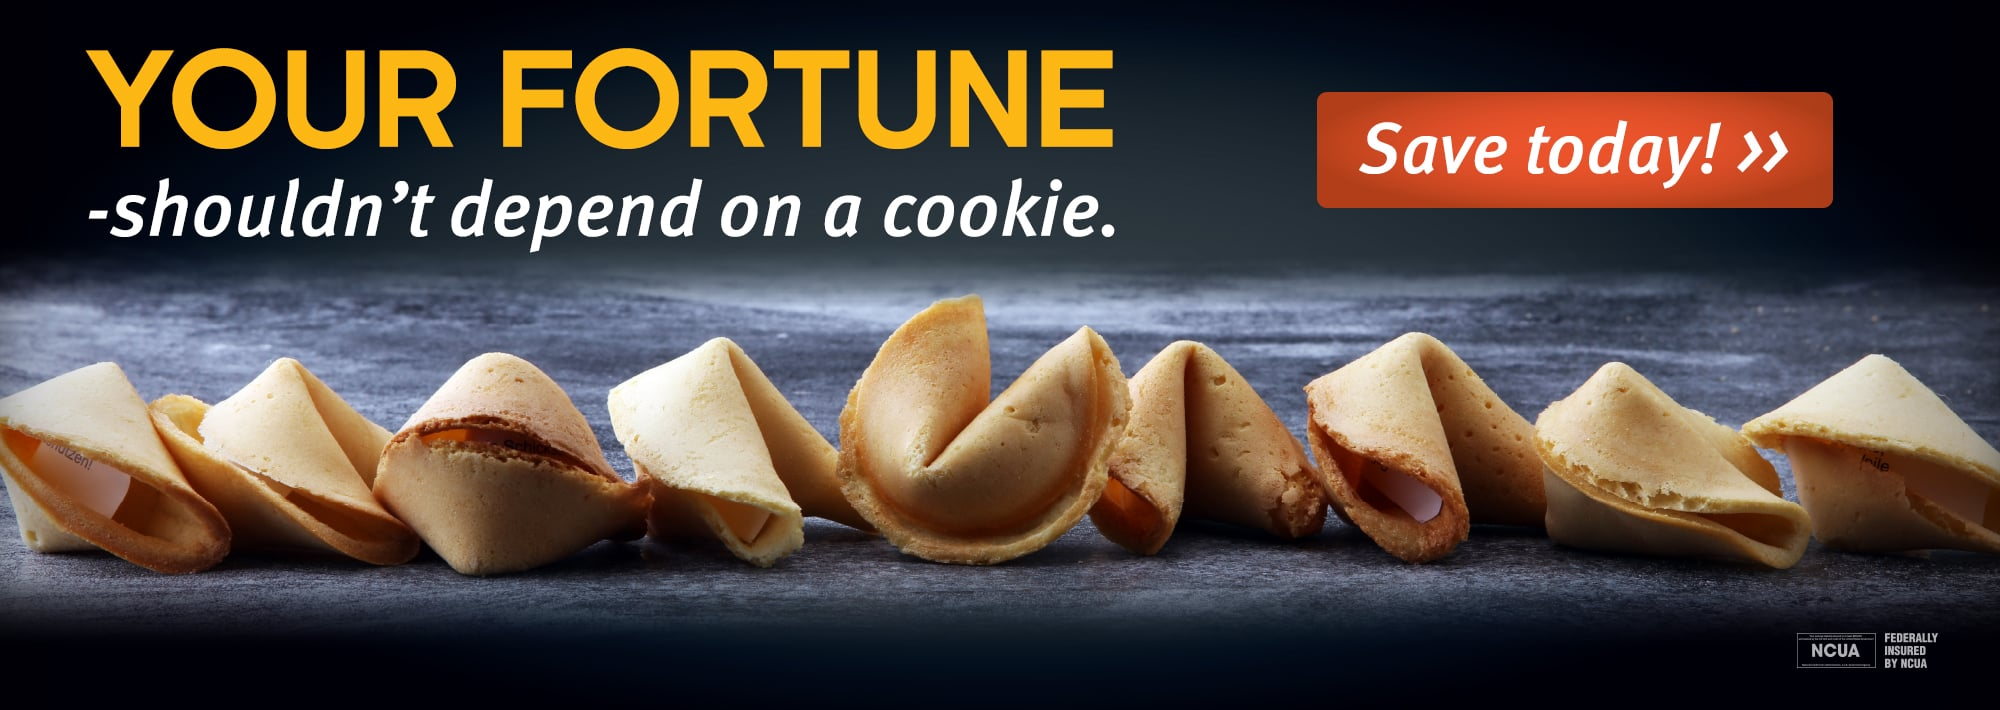 Your fortune shouldn't depend on a cookie. Start Saving